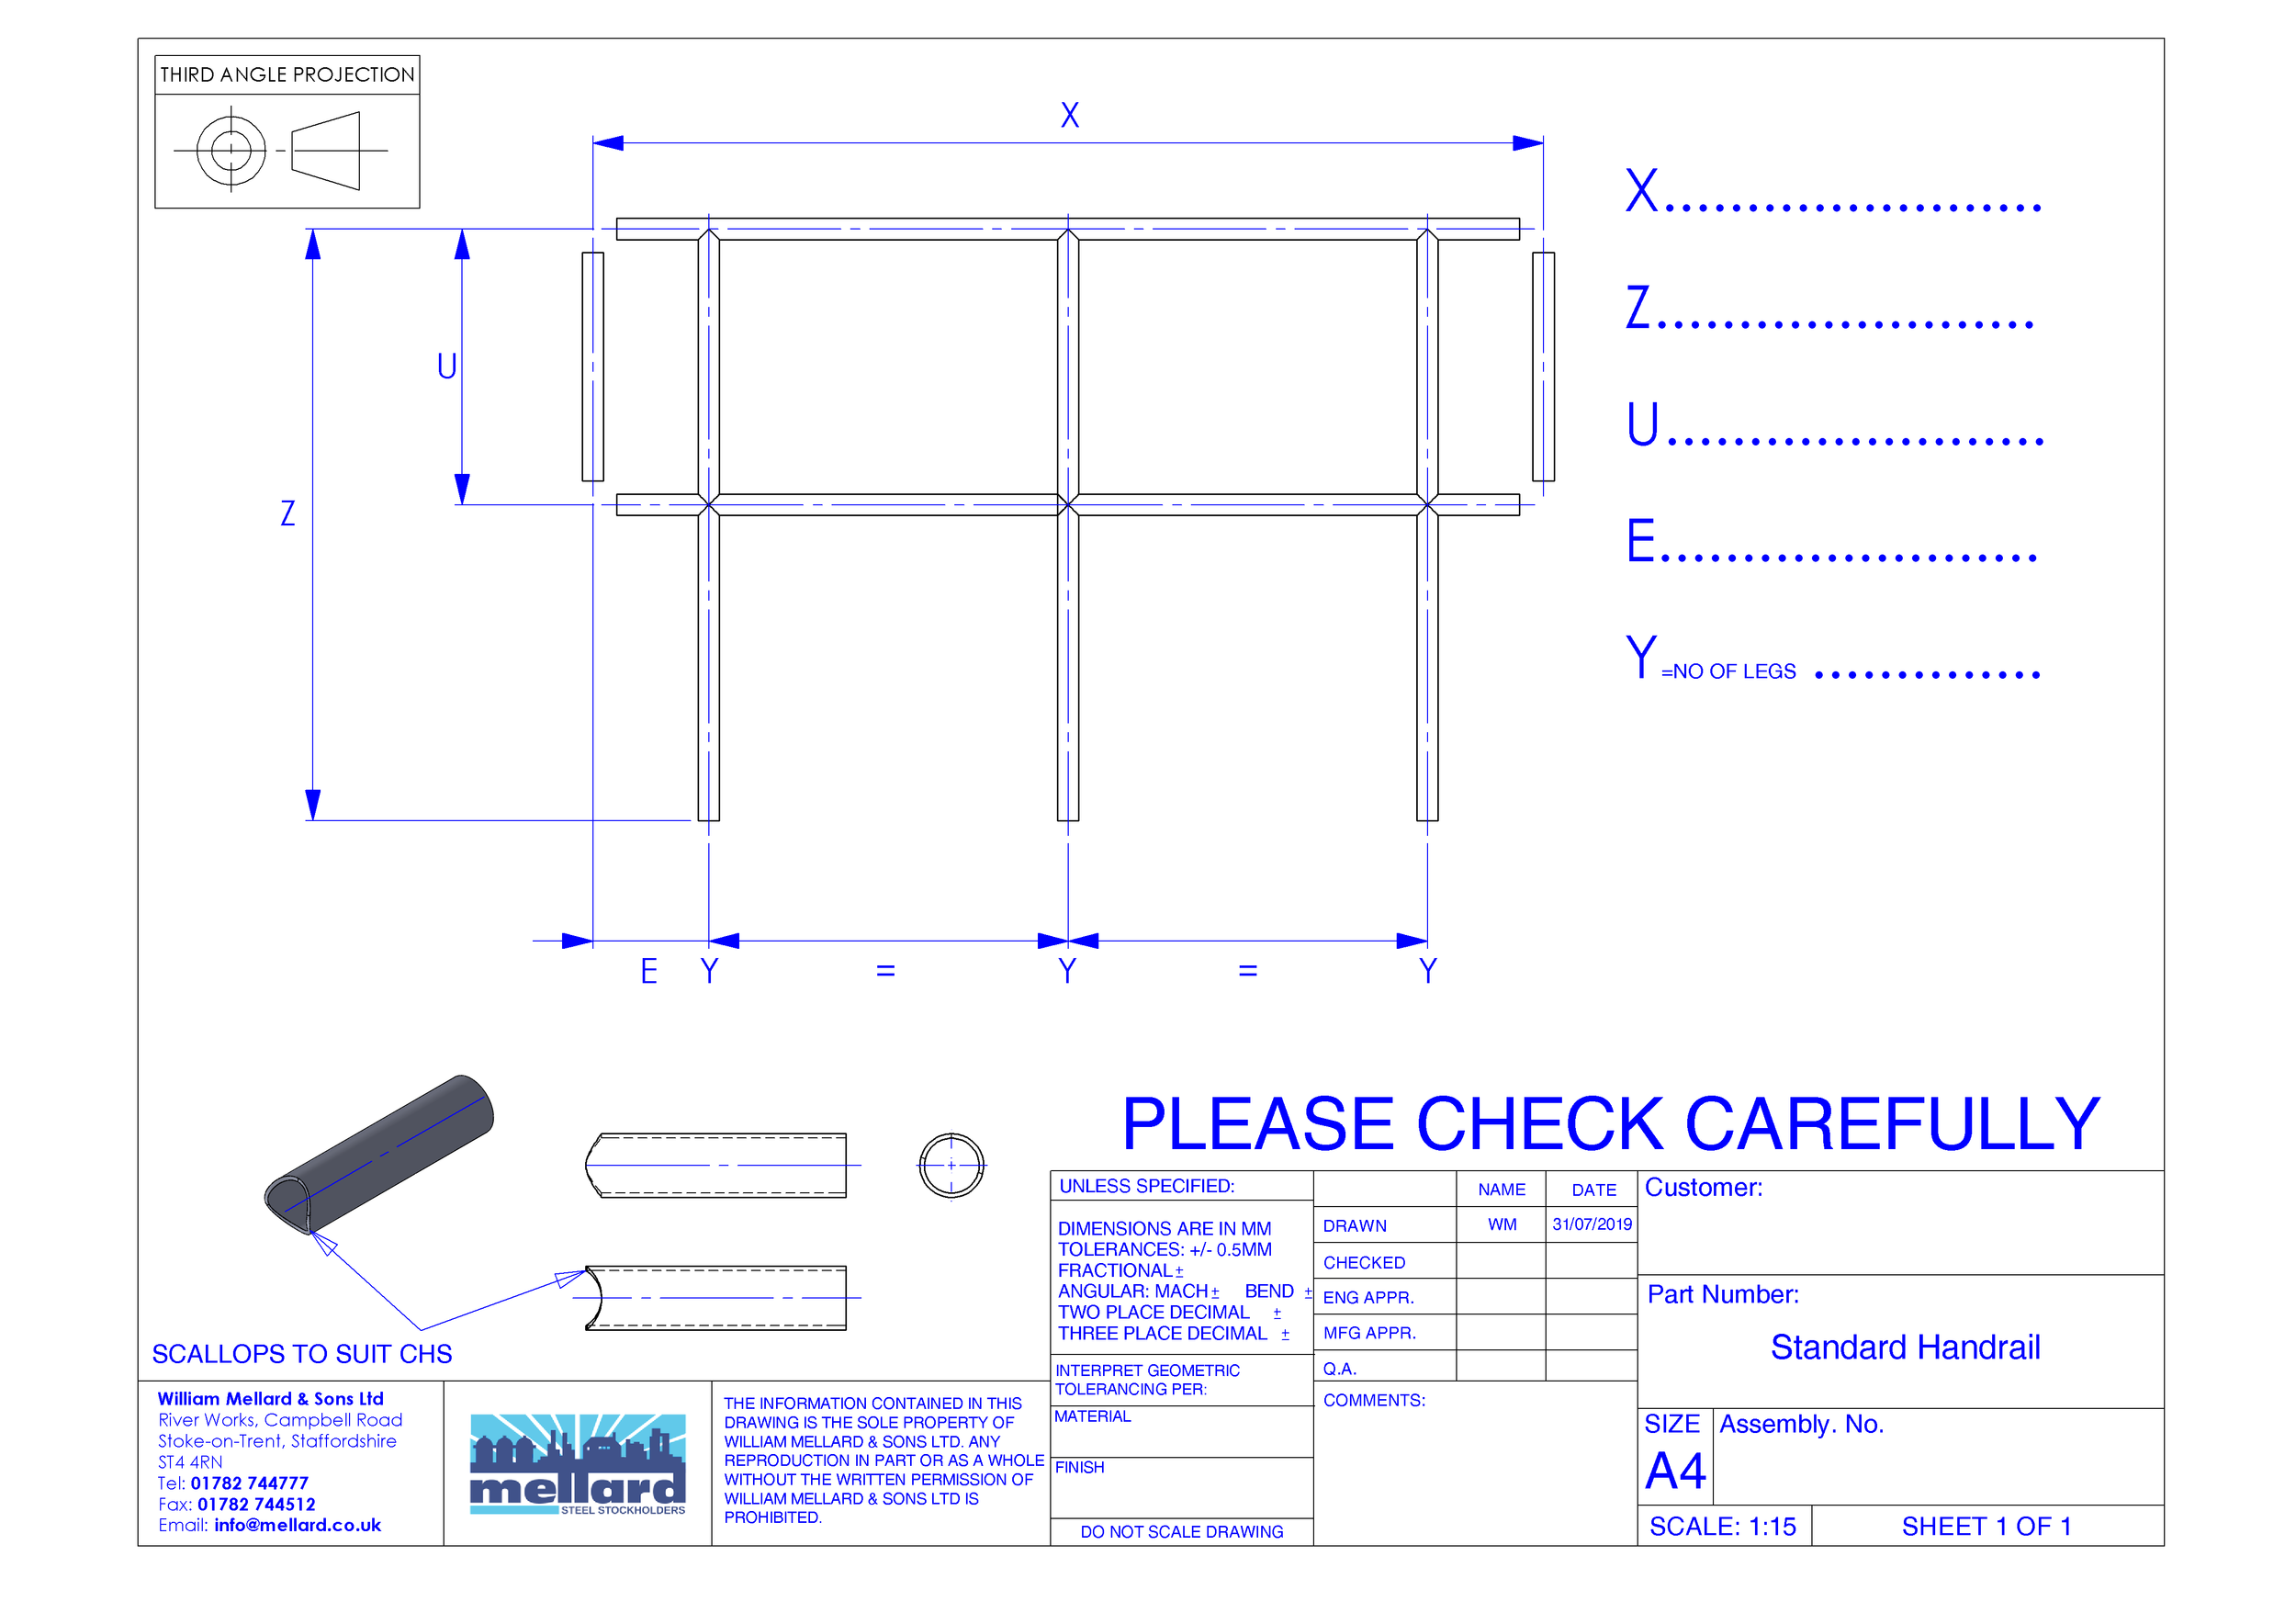 Standard Handrails - With our Standard Handrail template you can create you're own handrail in minutes, simply fill the details out and we'll do the rest! Email the drawing to tubelaser@mellard.co.uk, we will then send a drawing confirmation and proceed to process and deliver your handrails to you. Ready for fabrication!Download here.